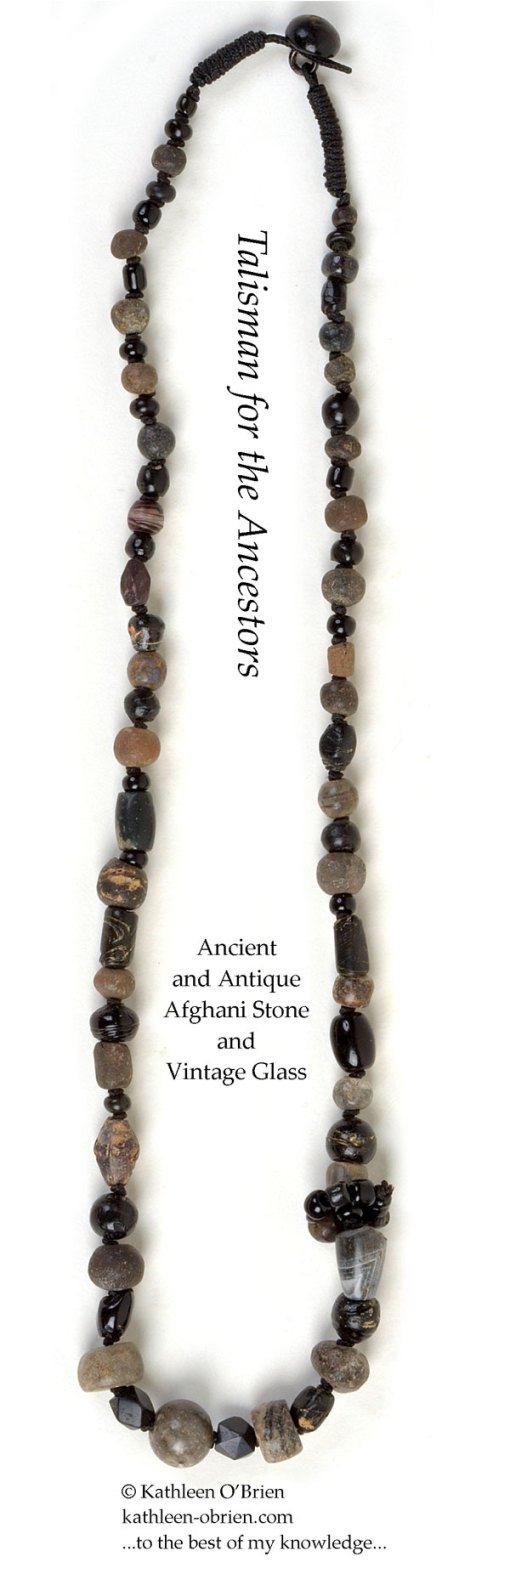 Talisman for the Ancestors, necklace bead ID by Kathleen O'Brien